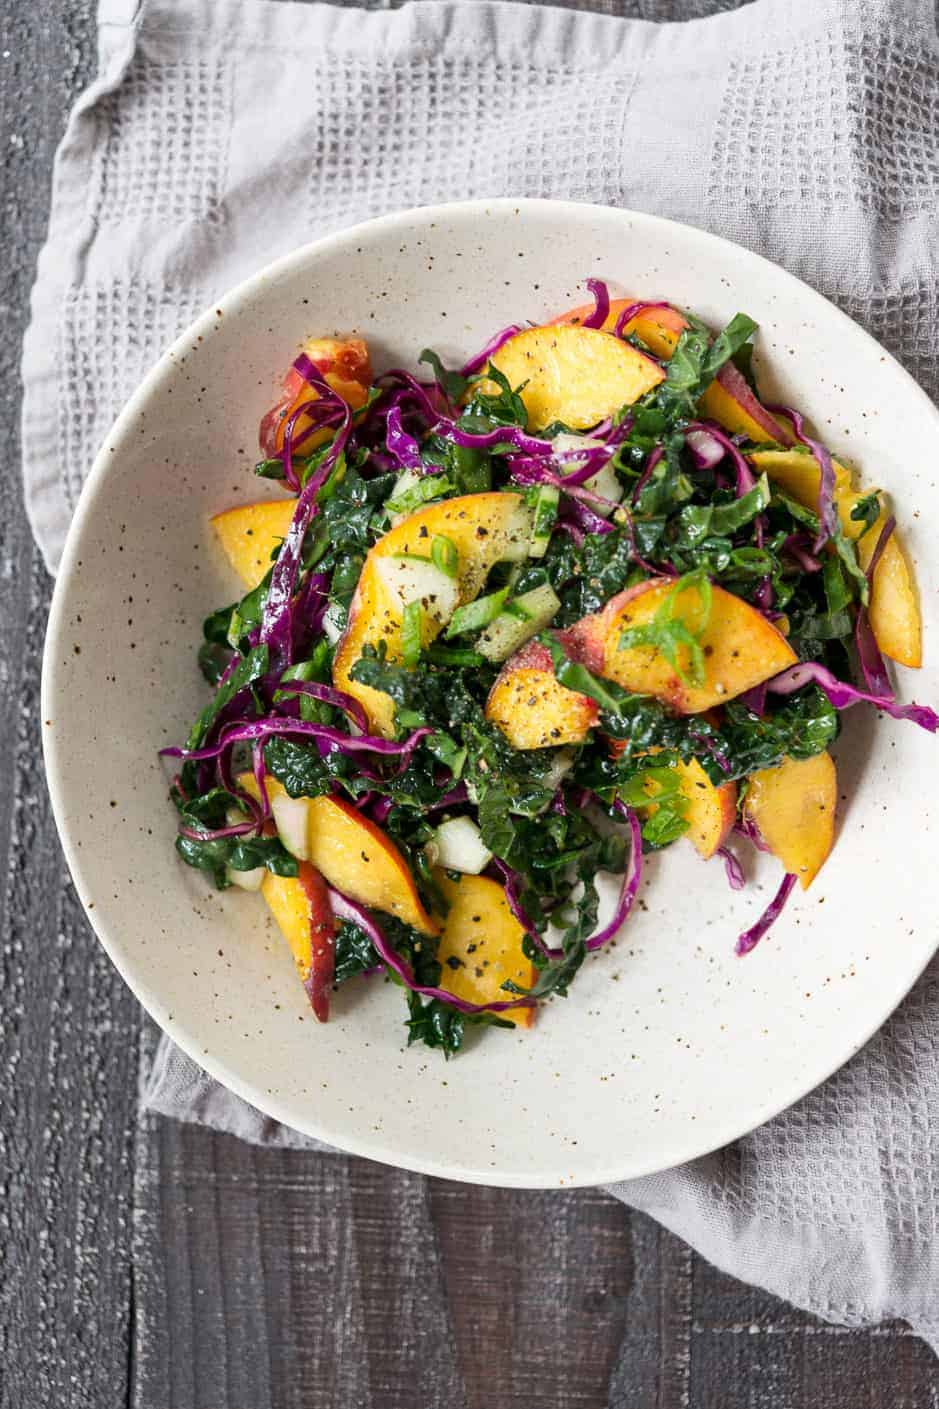 peach, kale and cabbage slaw